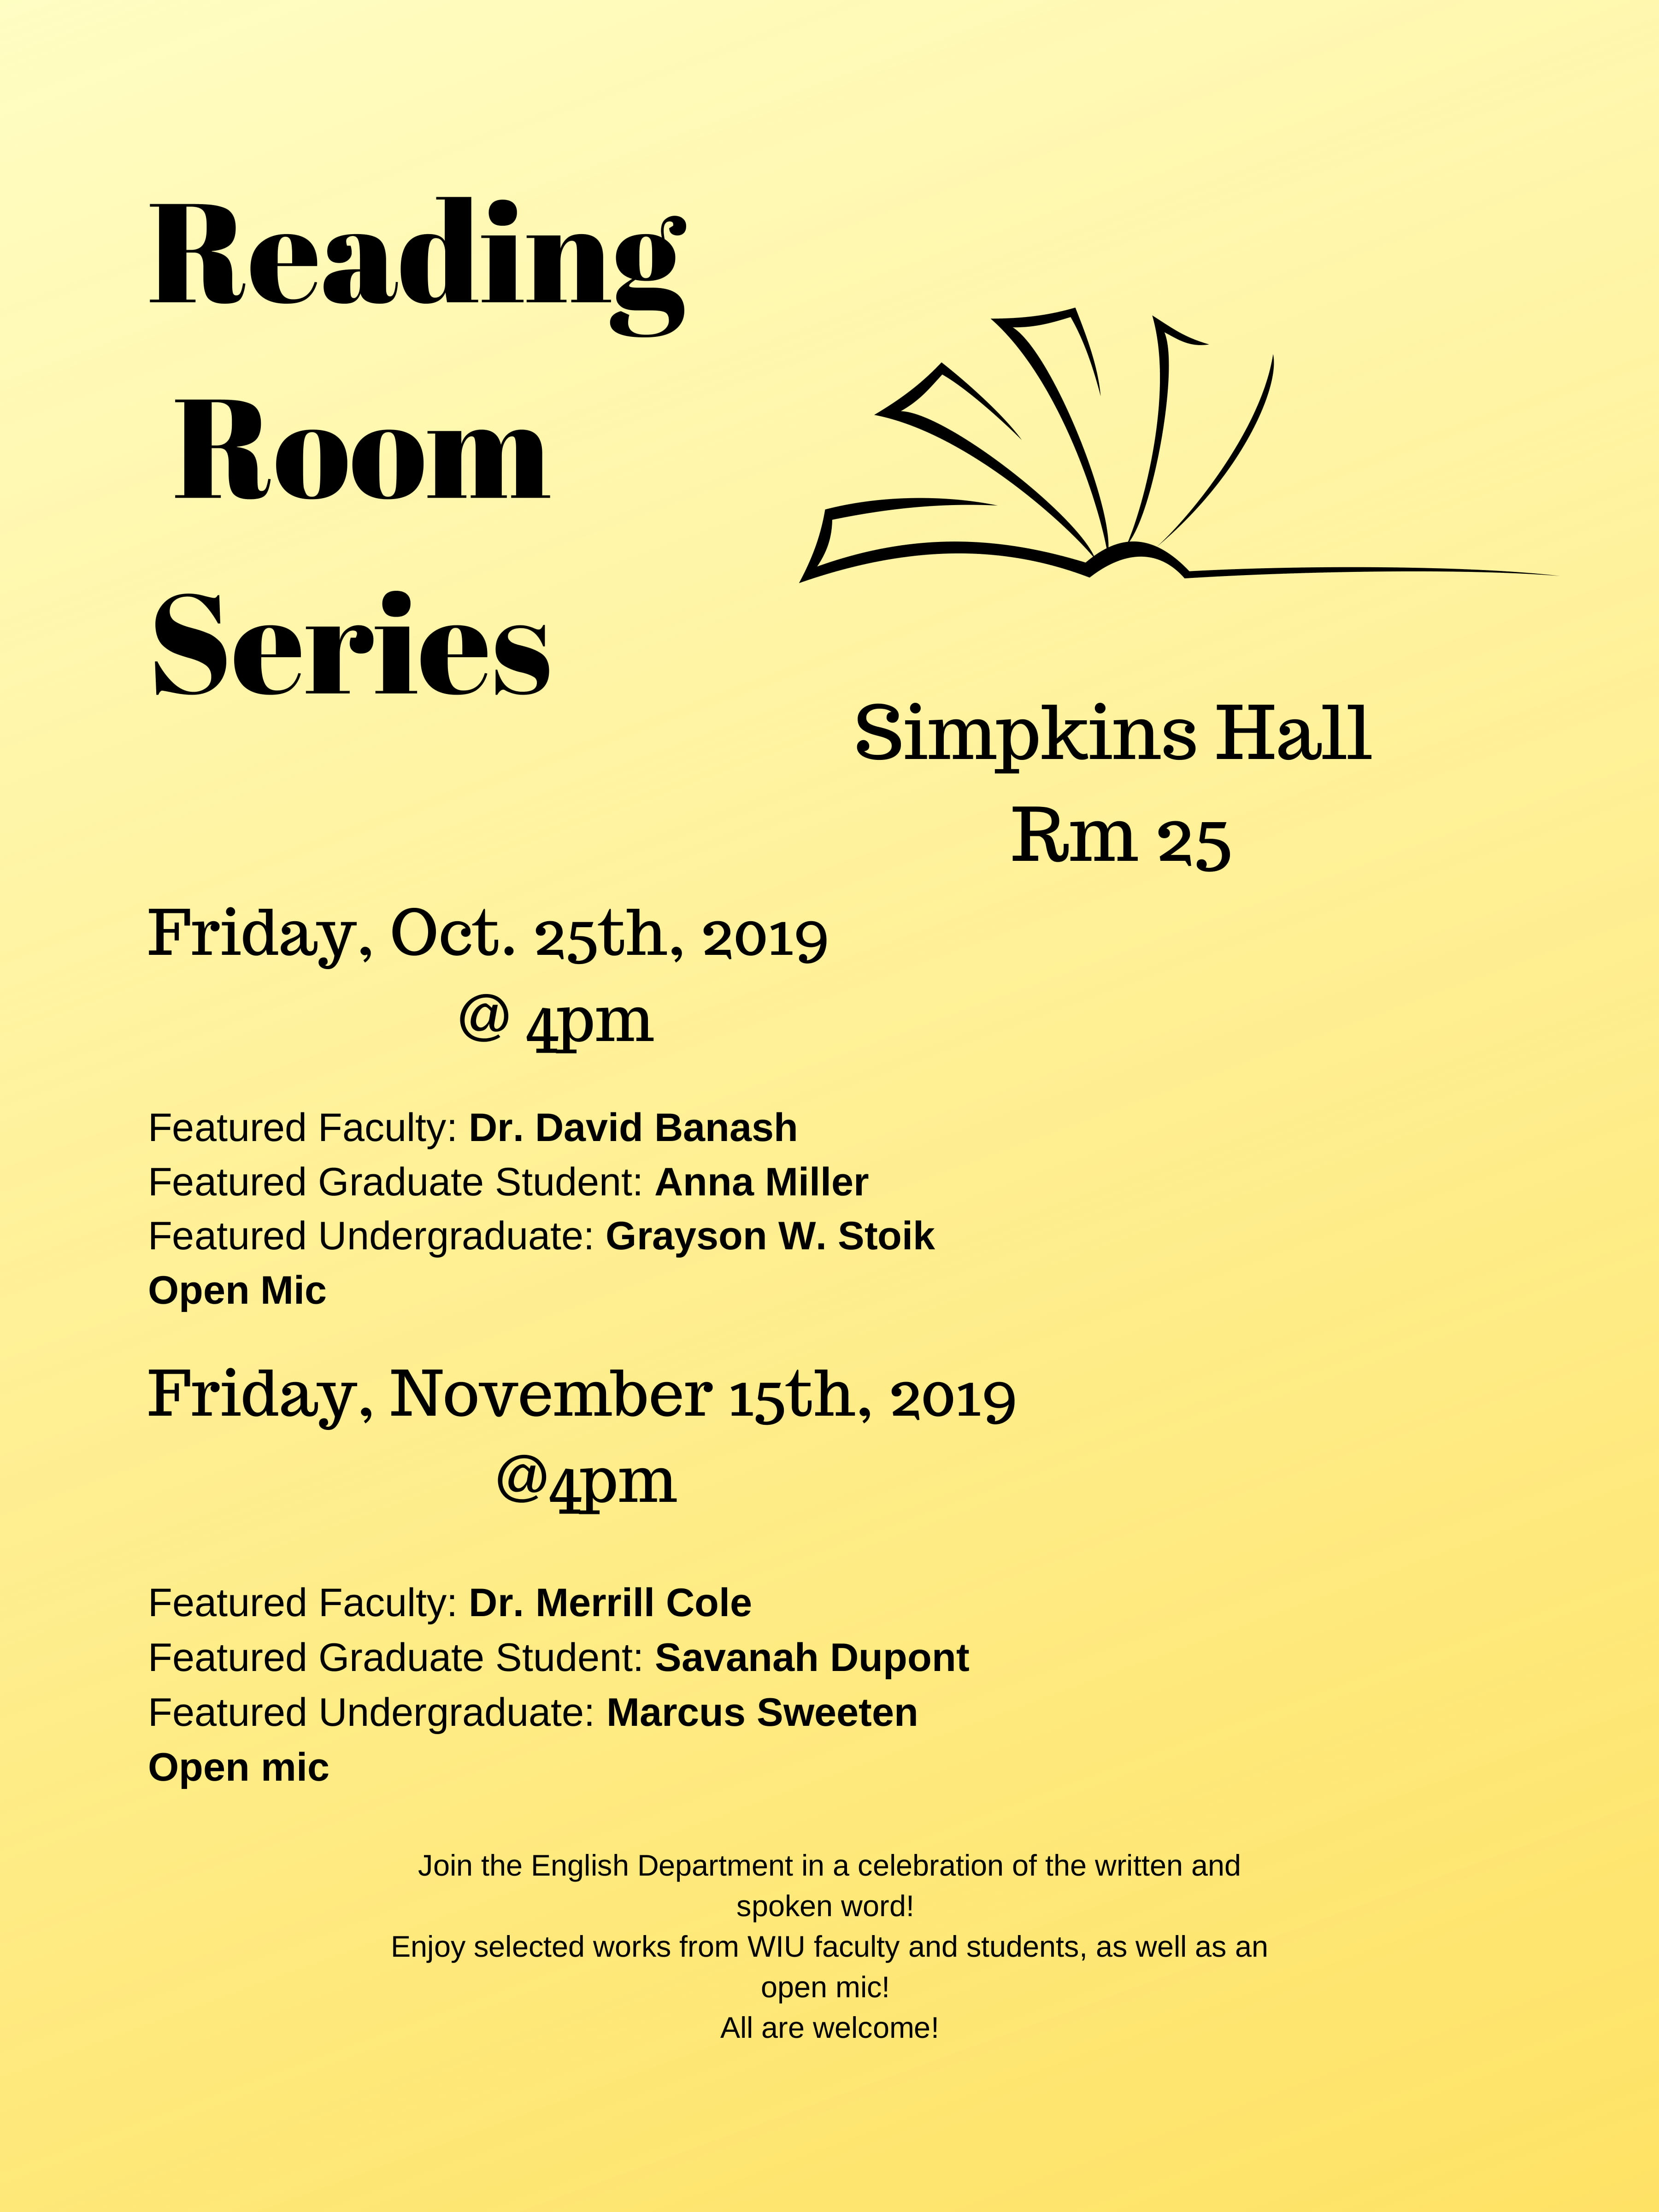 Reading Room Series Fall 2019